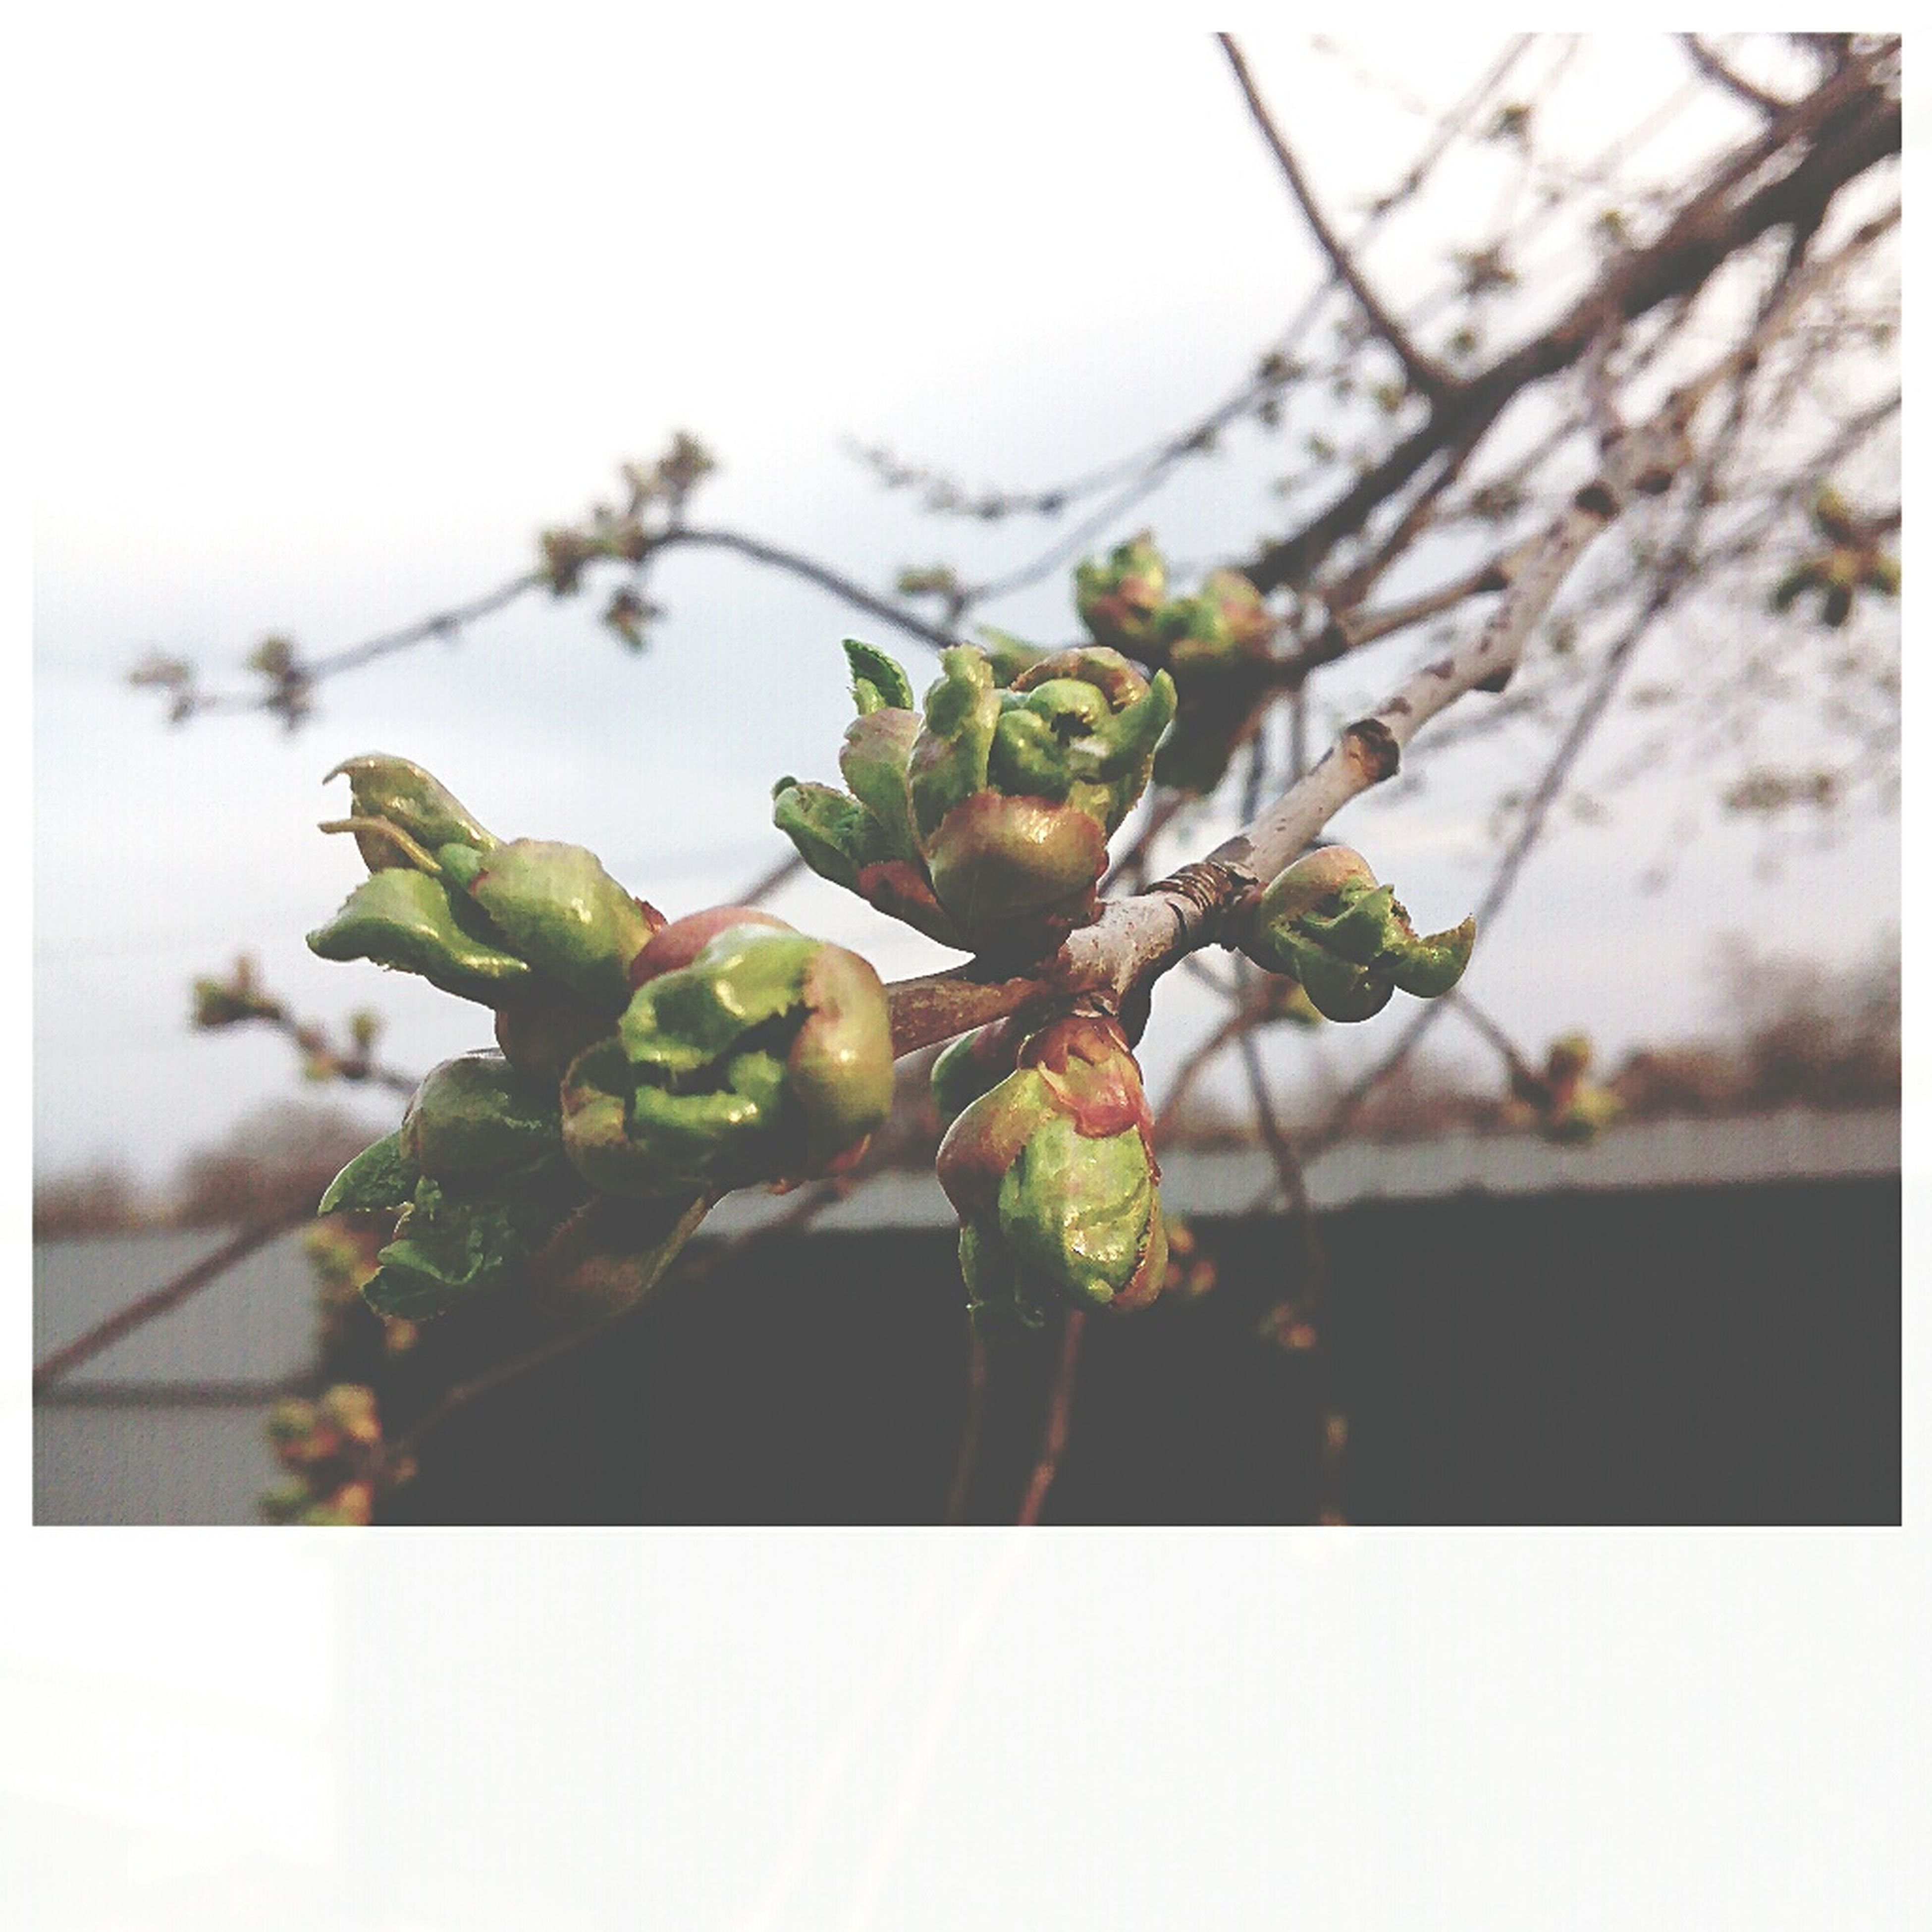 growth, nature, focus on foreground, tree, close-up, no people, food and drink, branch, freshness, fruit, healthy eating, day, food, beauty in nature, outdoors, sky